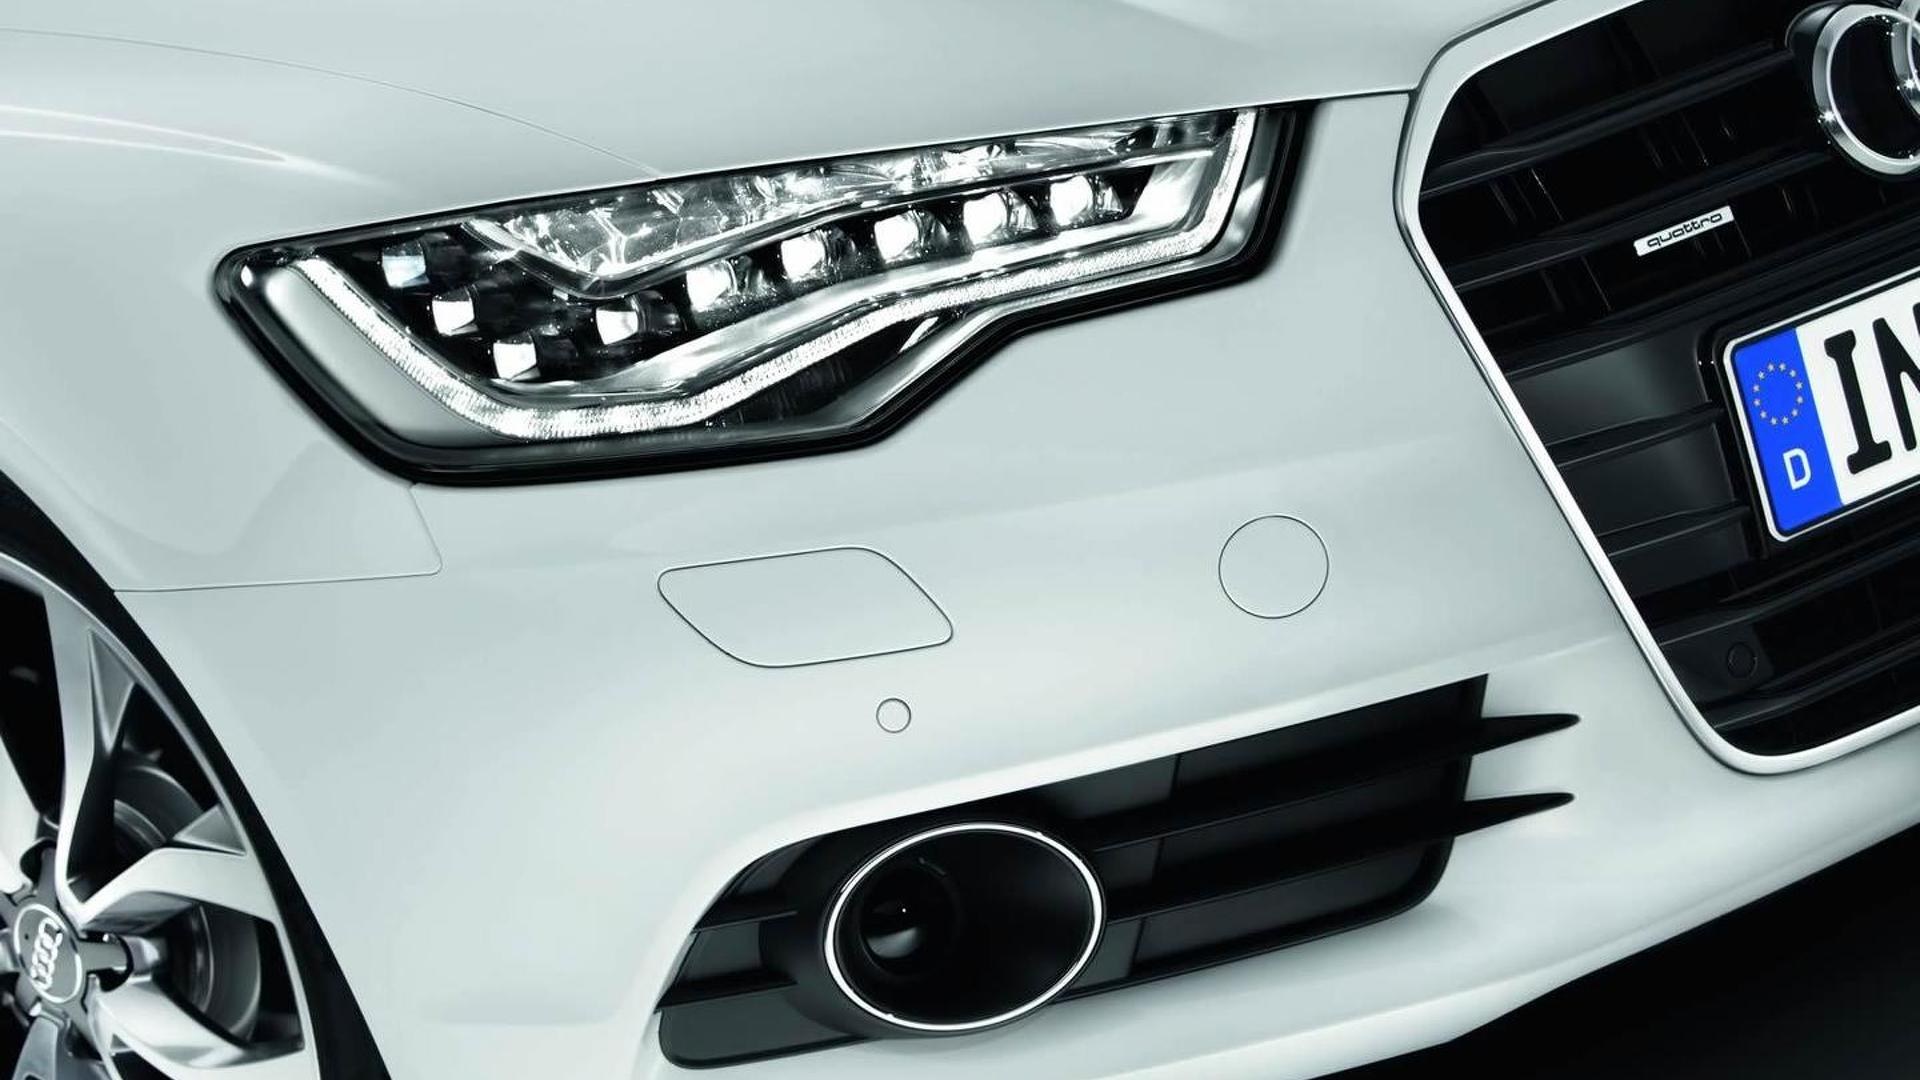 Audi's LED technology considered eco-innovation by EU [video]